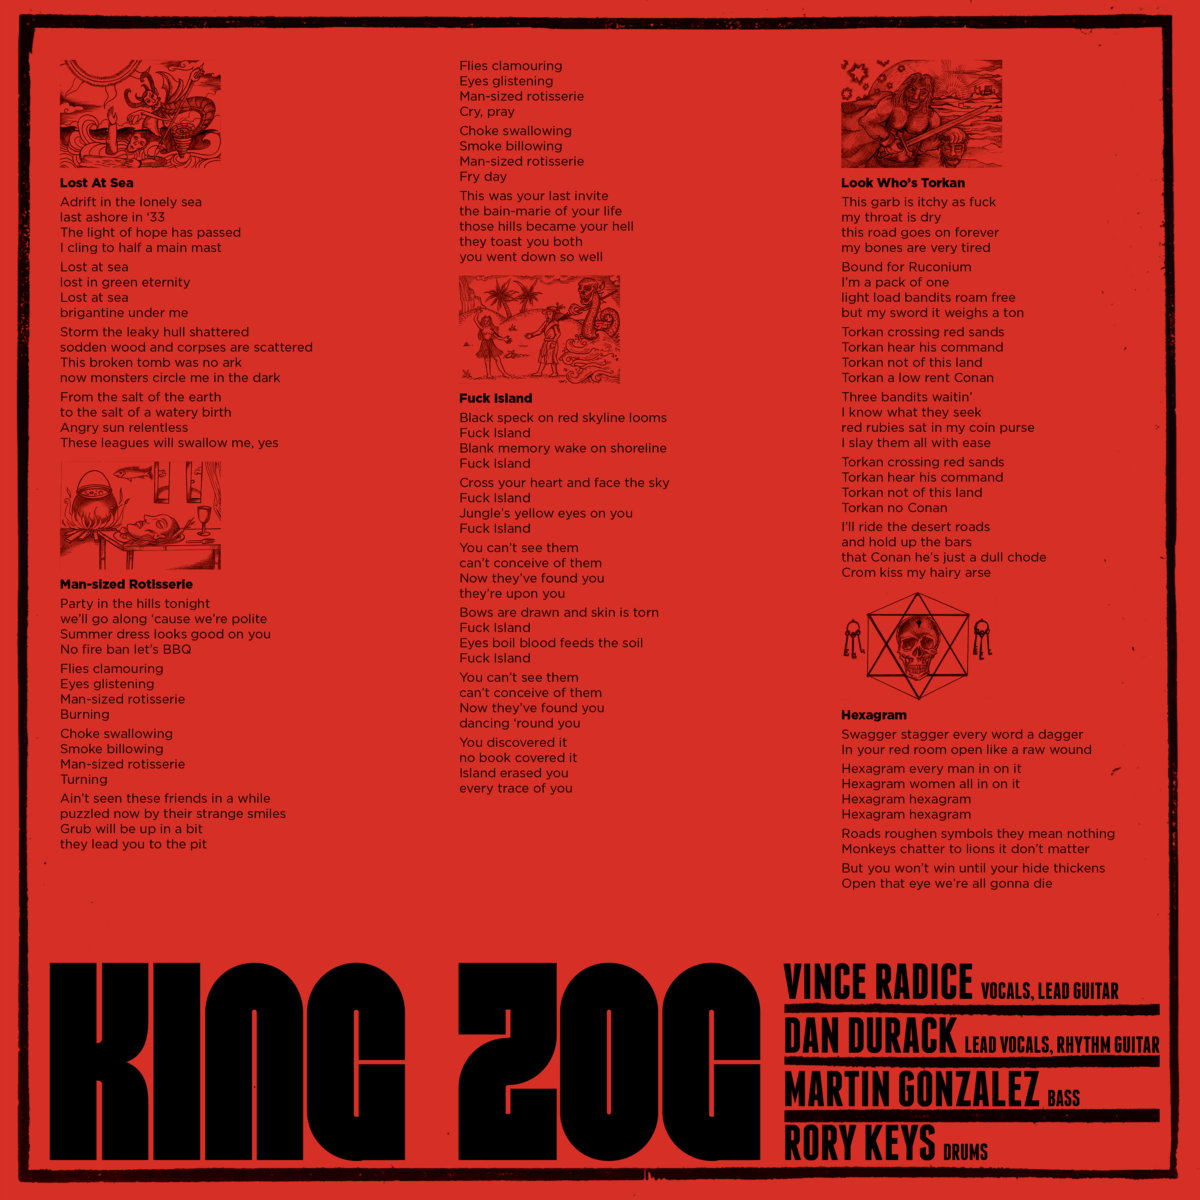 Season in hell king zog gatefold jacket gloss laminated for your handling pleasure includes double sided lyric sheet with some other goodies if youre lucky stopboris Choice Image